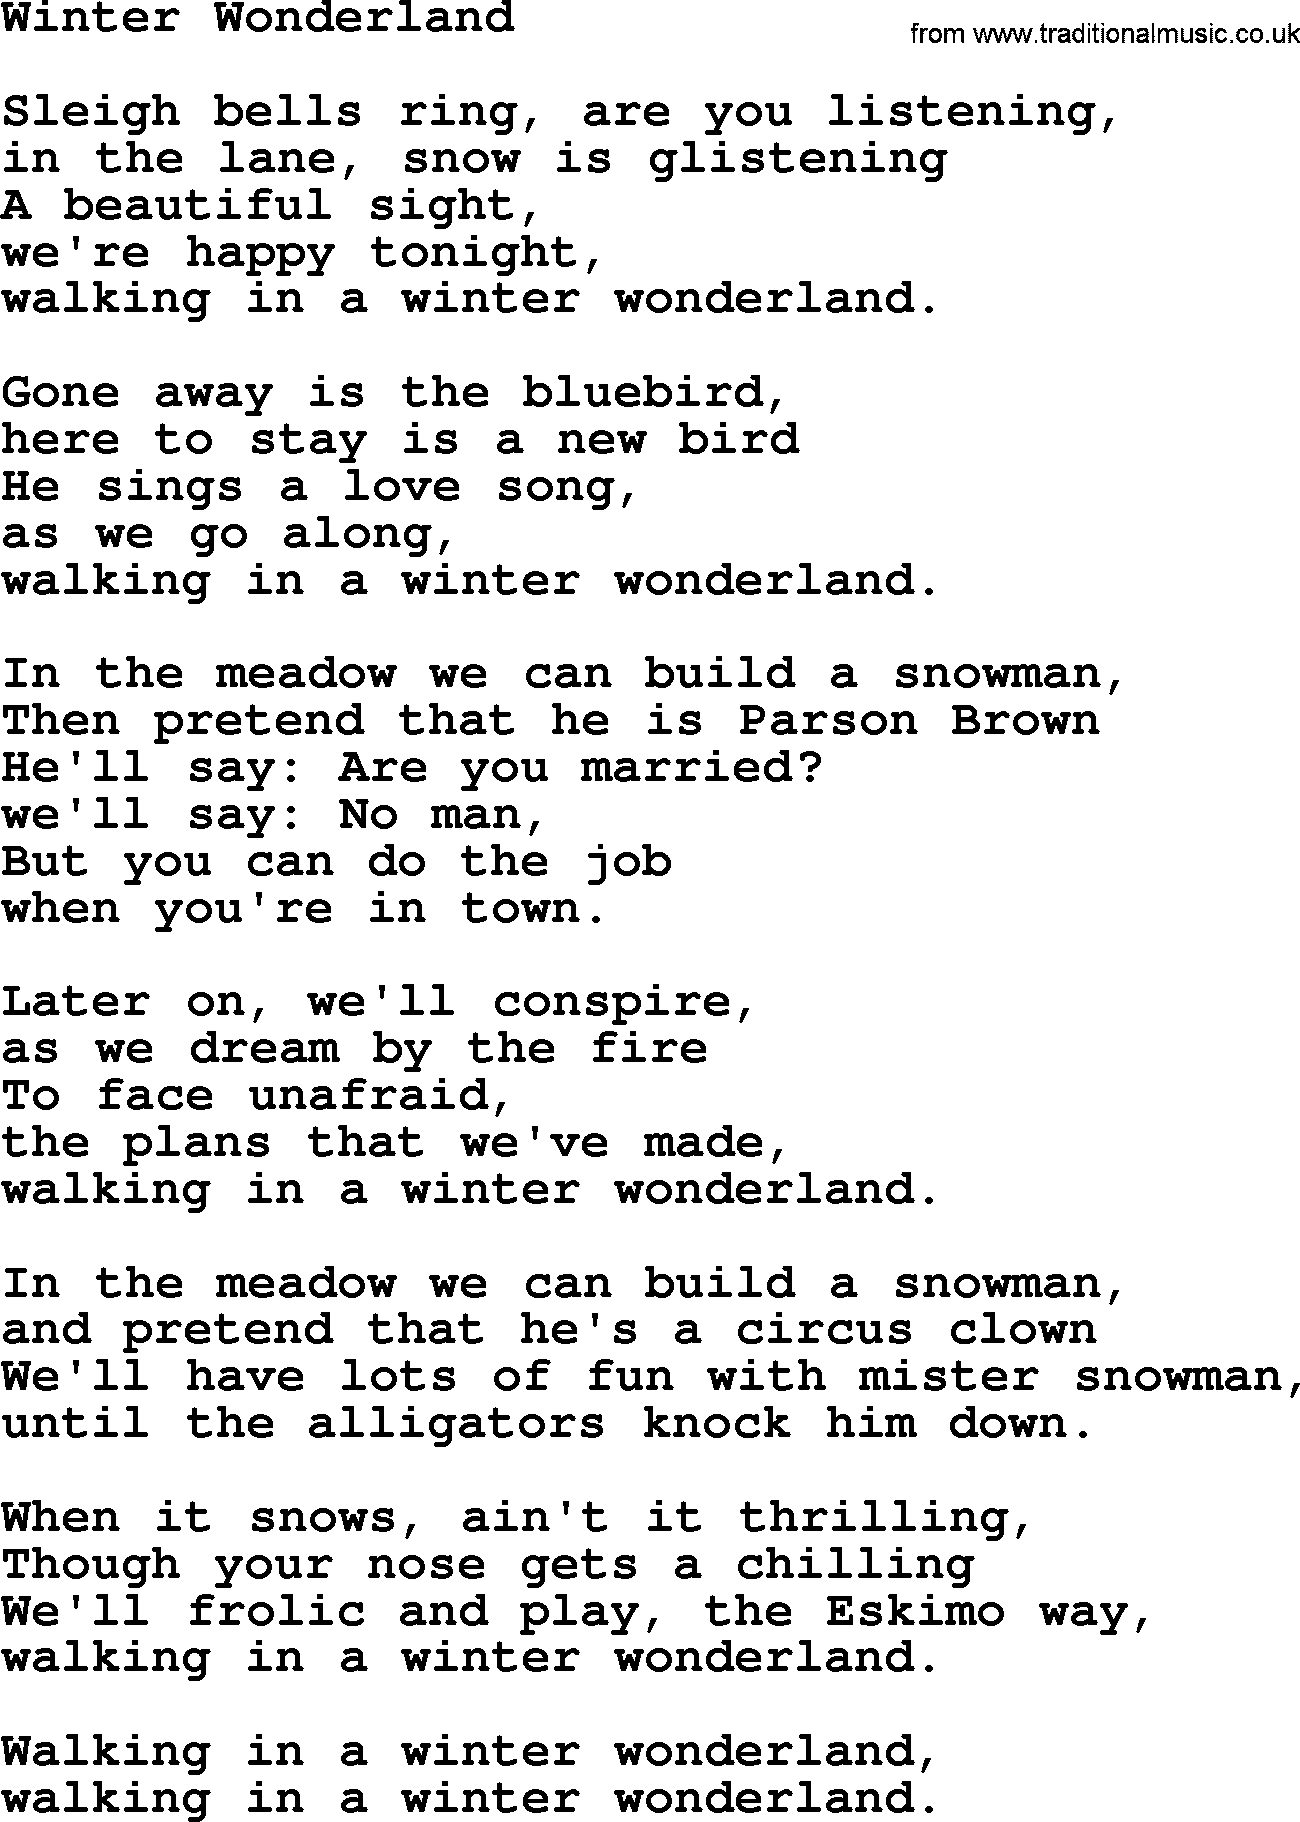 Winter wondeland lyrics